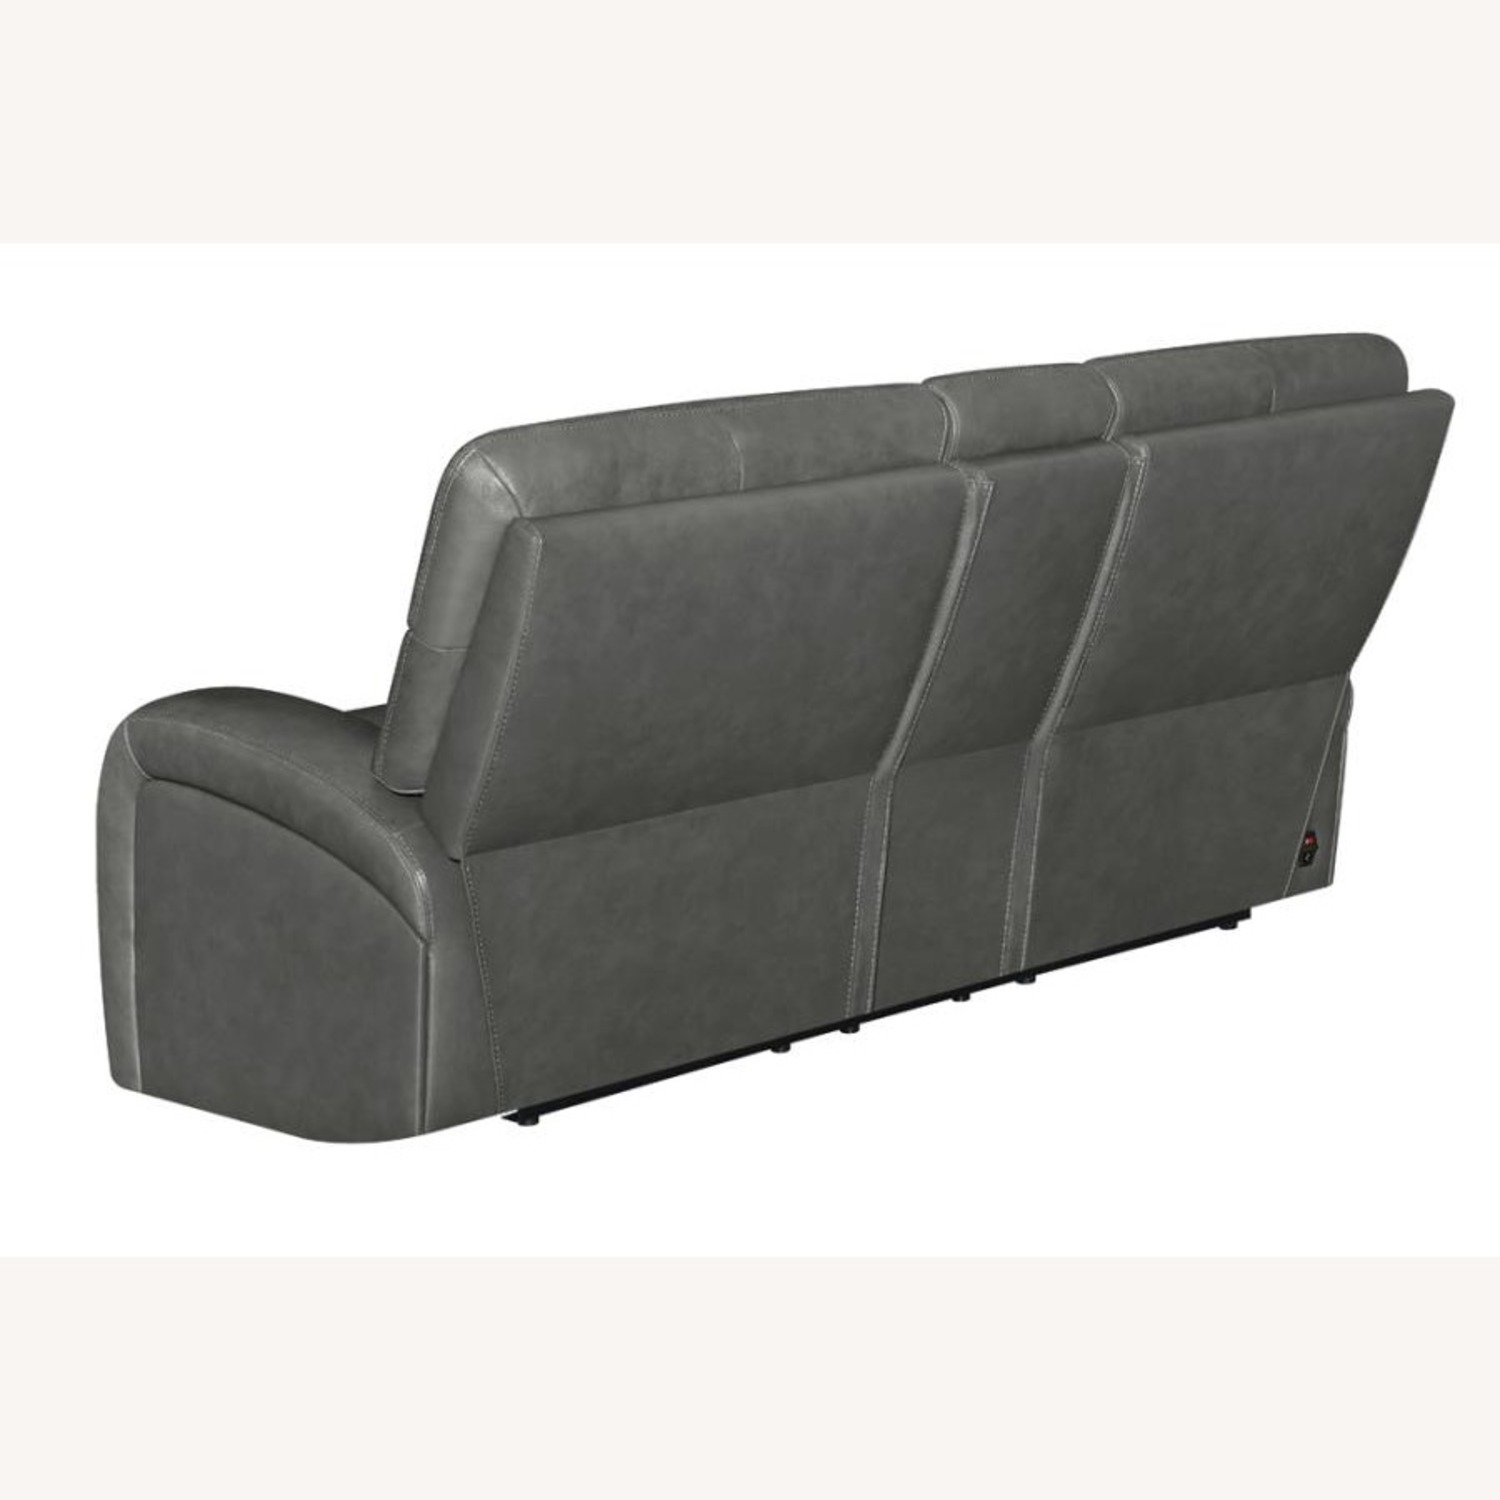 Power Loveseat W/ Console In Charcoal Leatherette - image-3